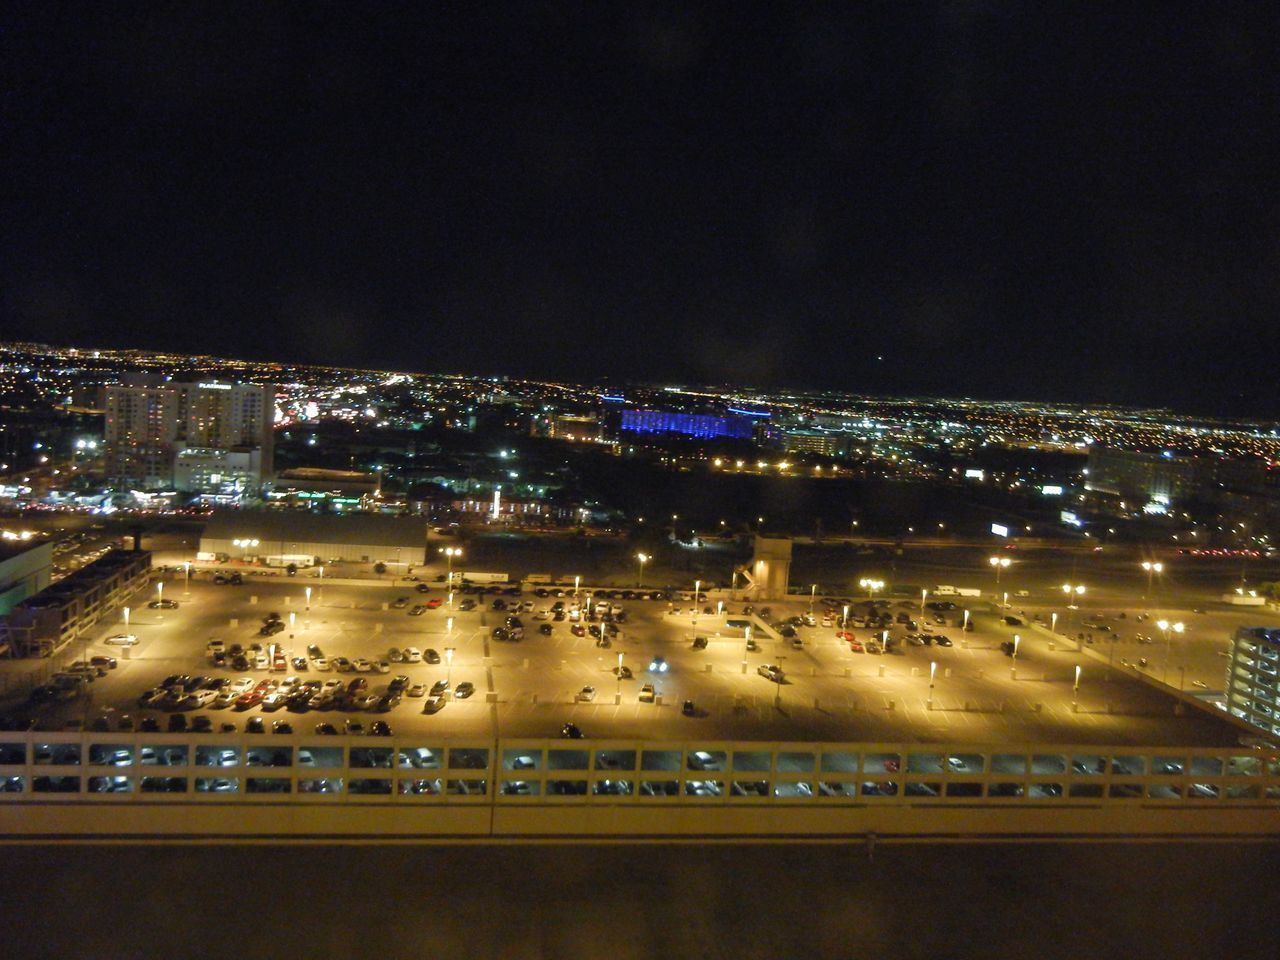 HIGH ANGLE VIEW OF ILLUMINATED BUILDINGS AGAINST SKY